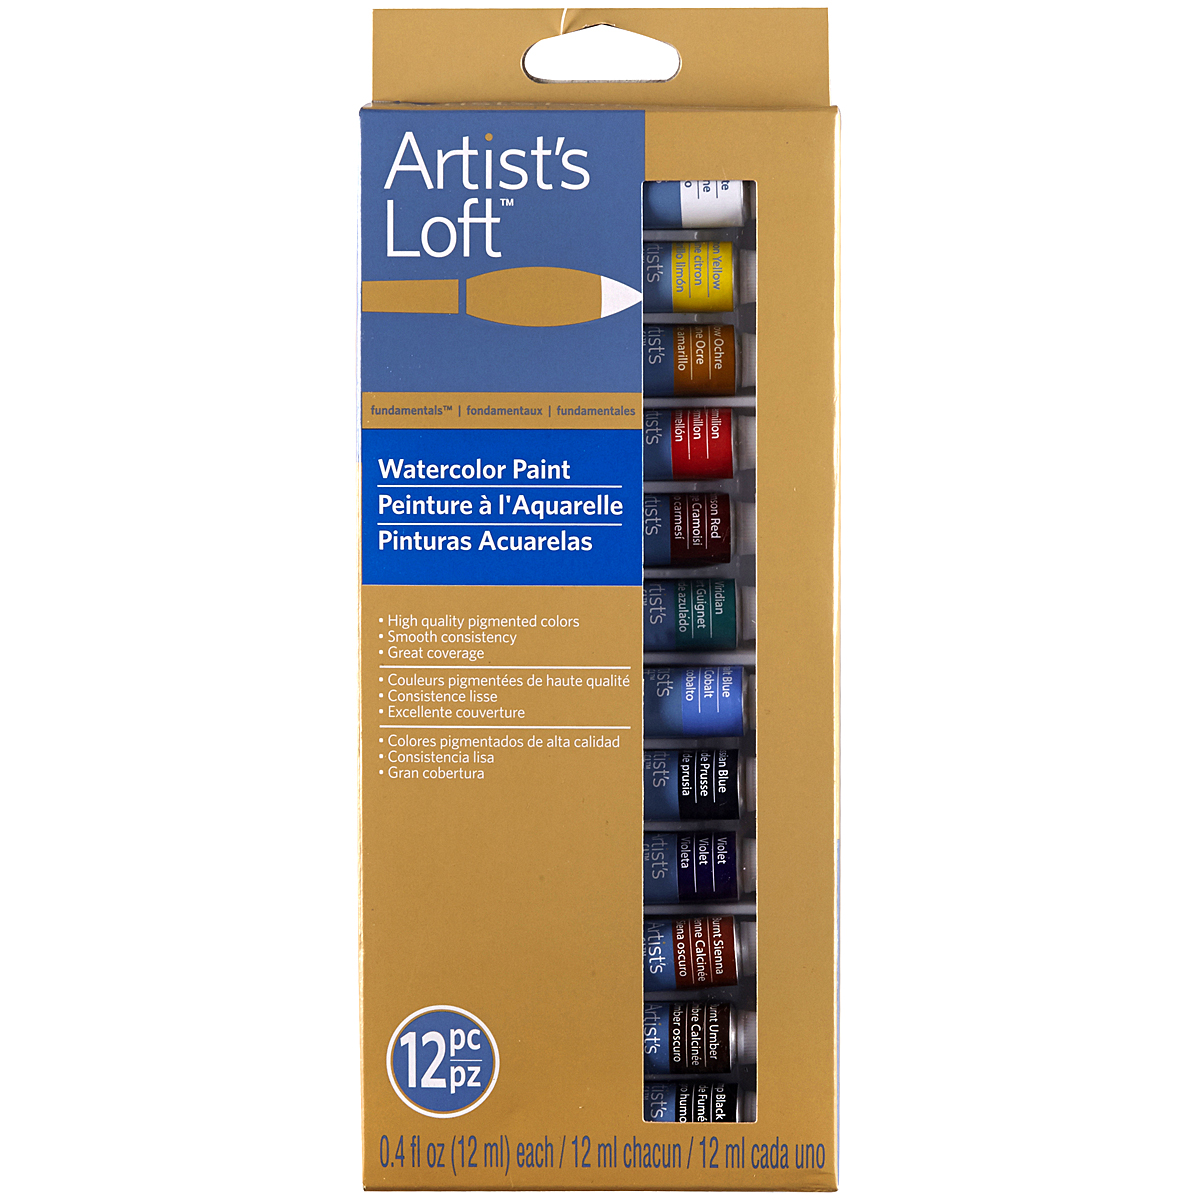 loft watercolor paint